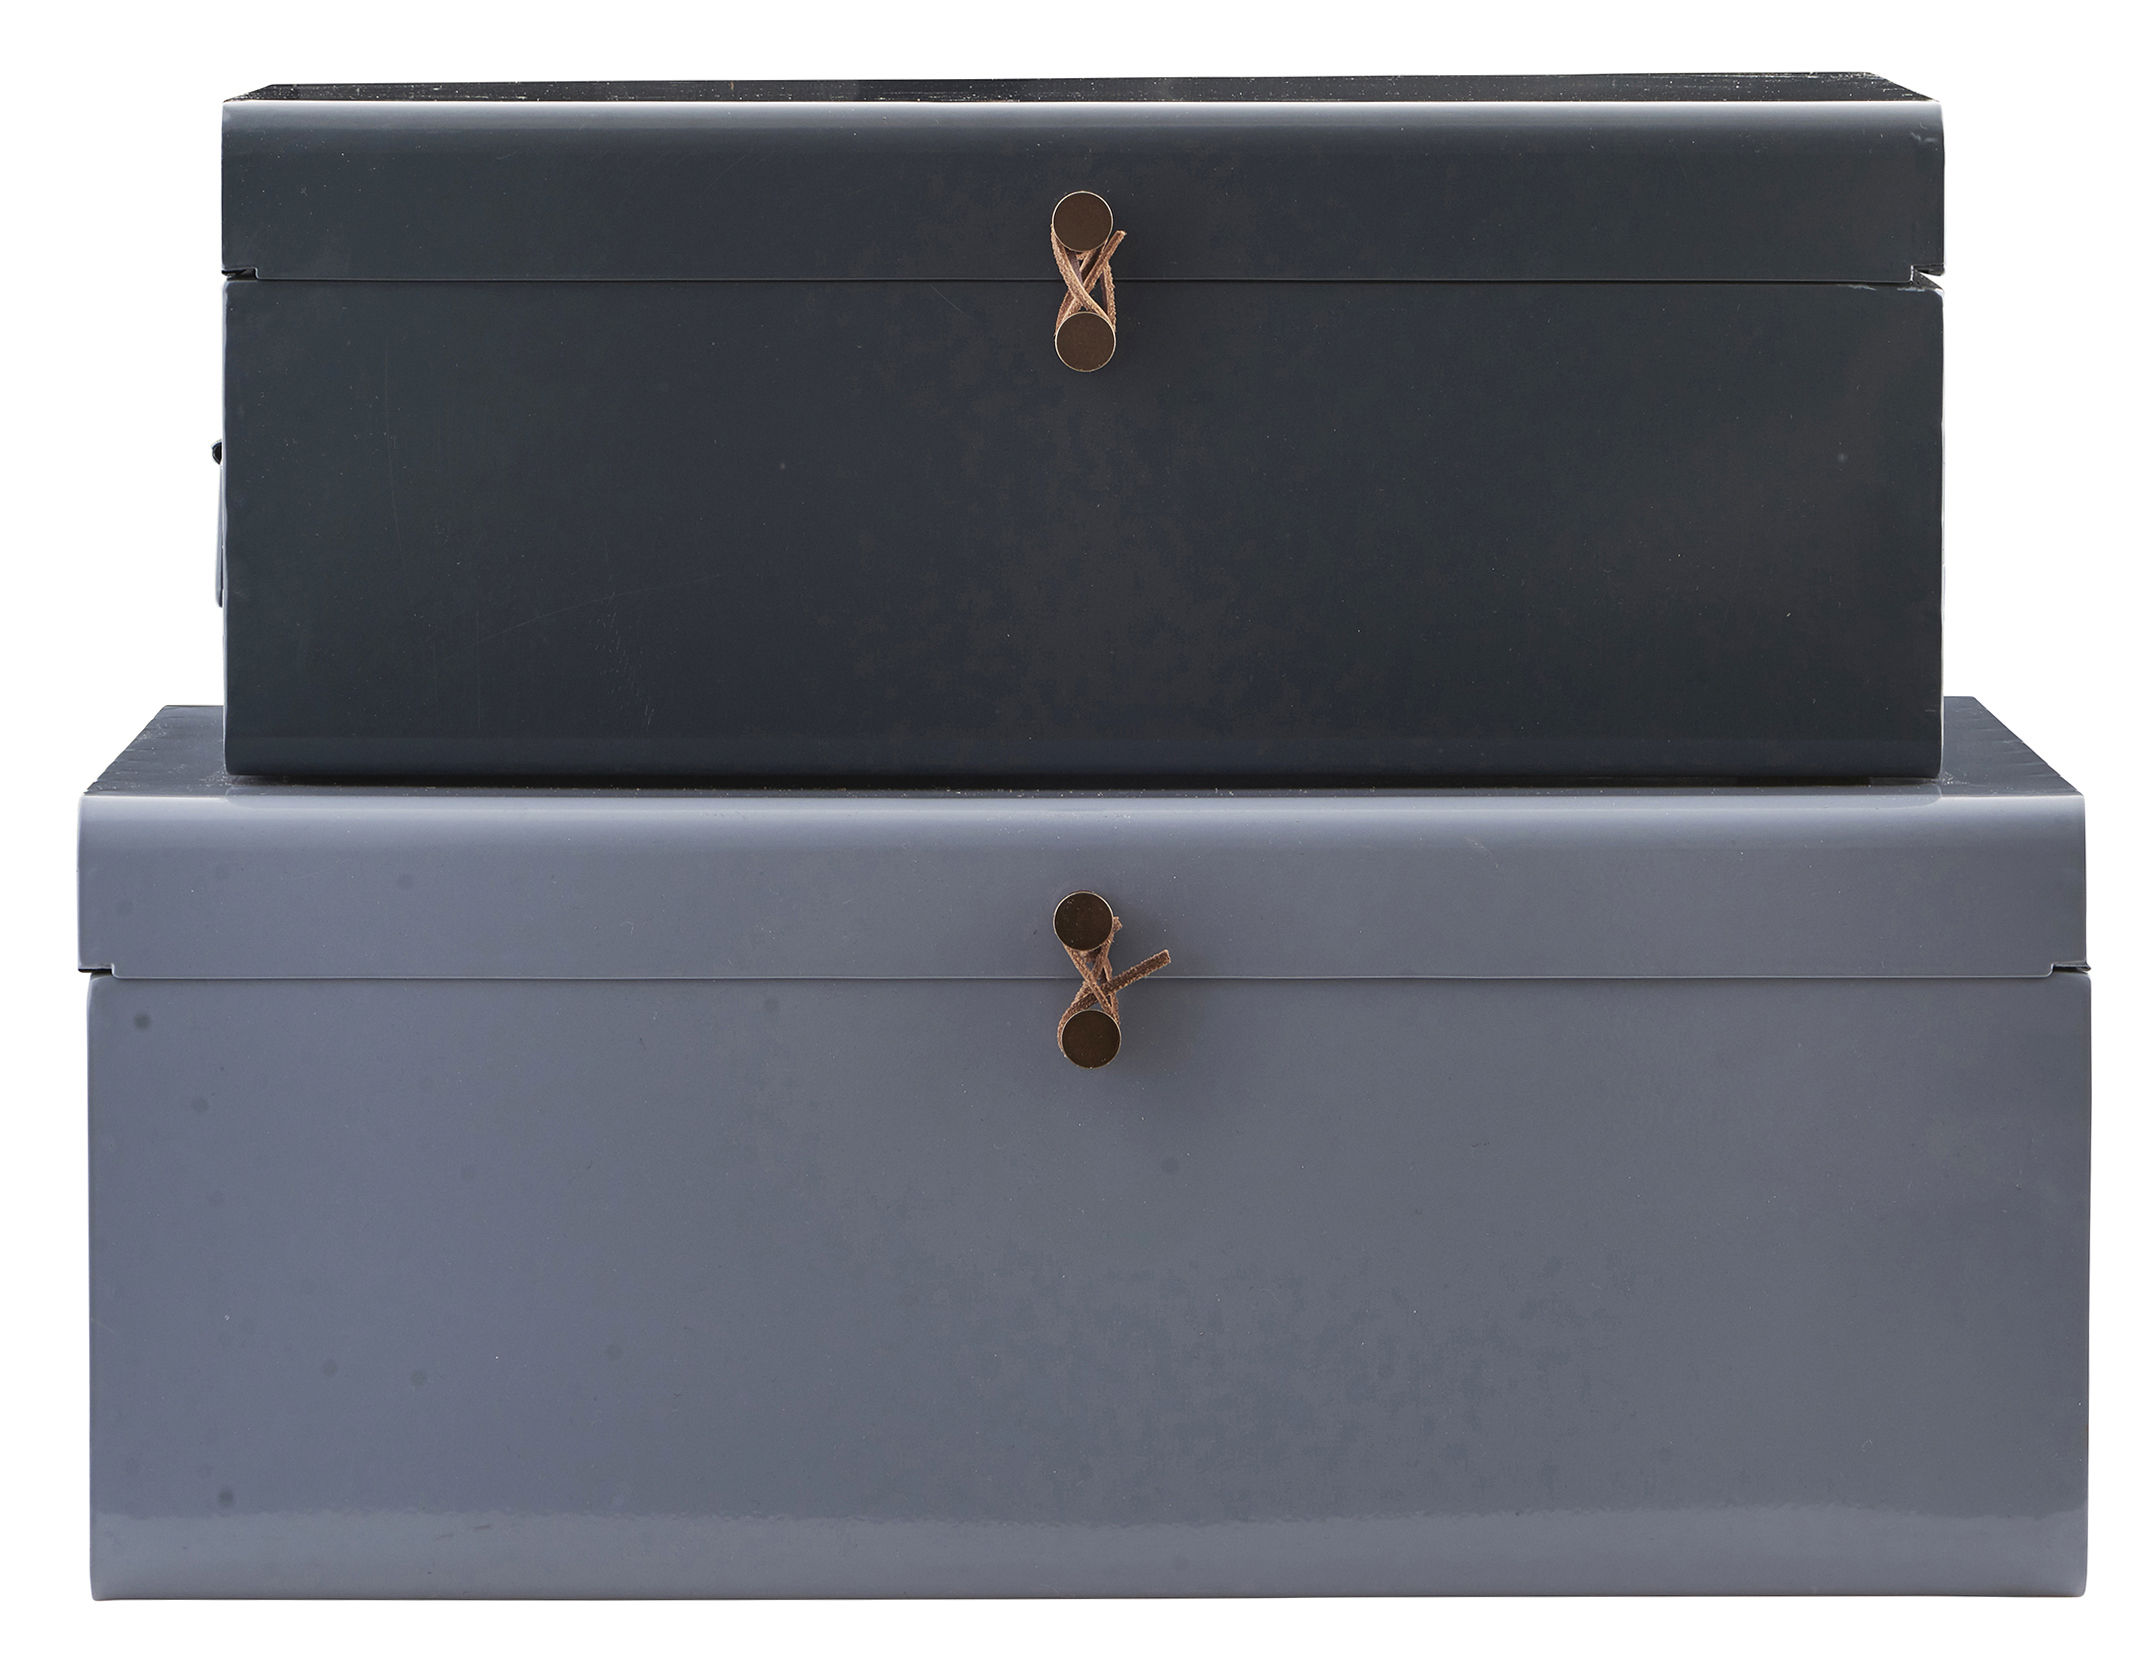 Decoration - Children's Home Accessories - Metal Trunk - Set of 2 - 60 x 36 cm by House Doctor - Blue / Grey - Lacquered metal, Leather